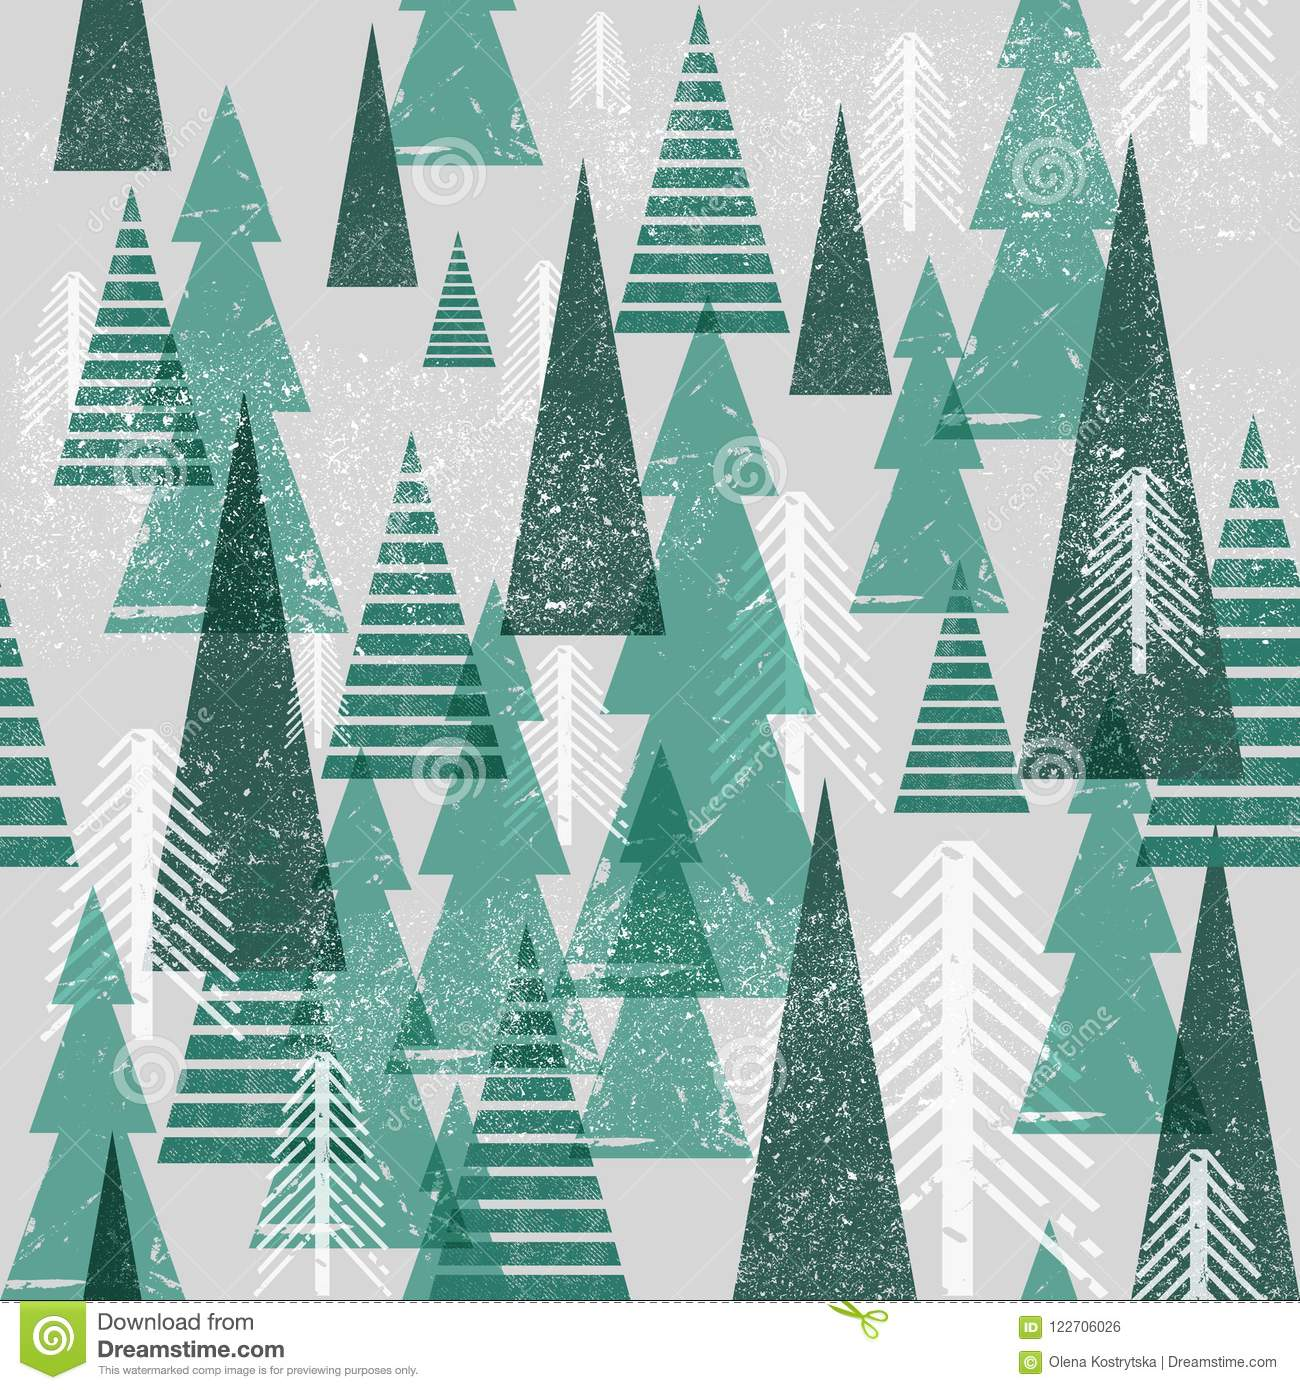 Seamless vector winter forest pattern. Christmas background. Green trees in clouds. Grunge texture graphic simple